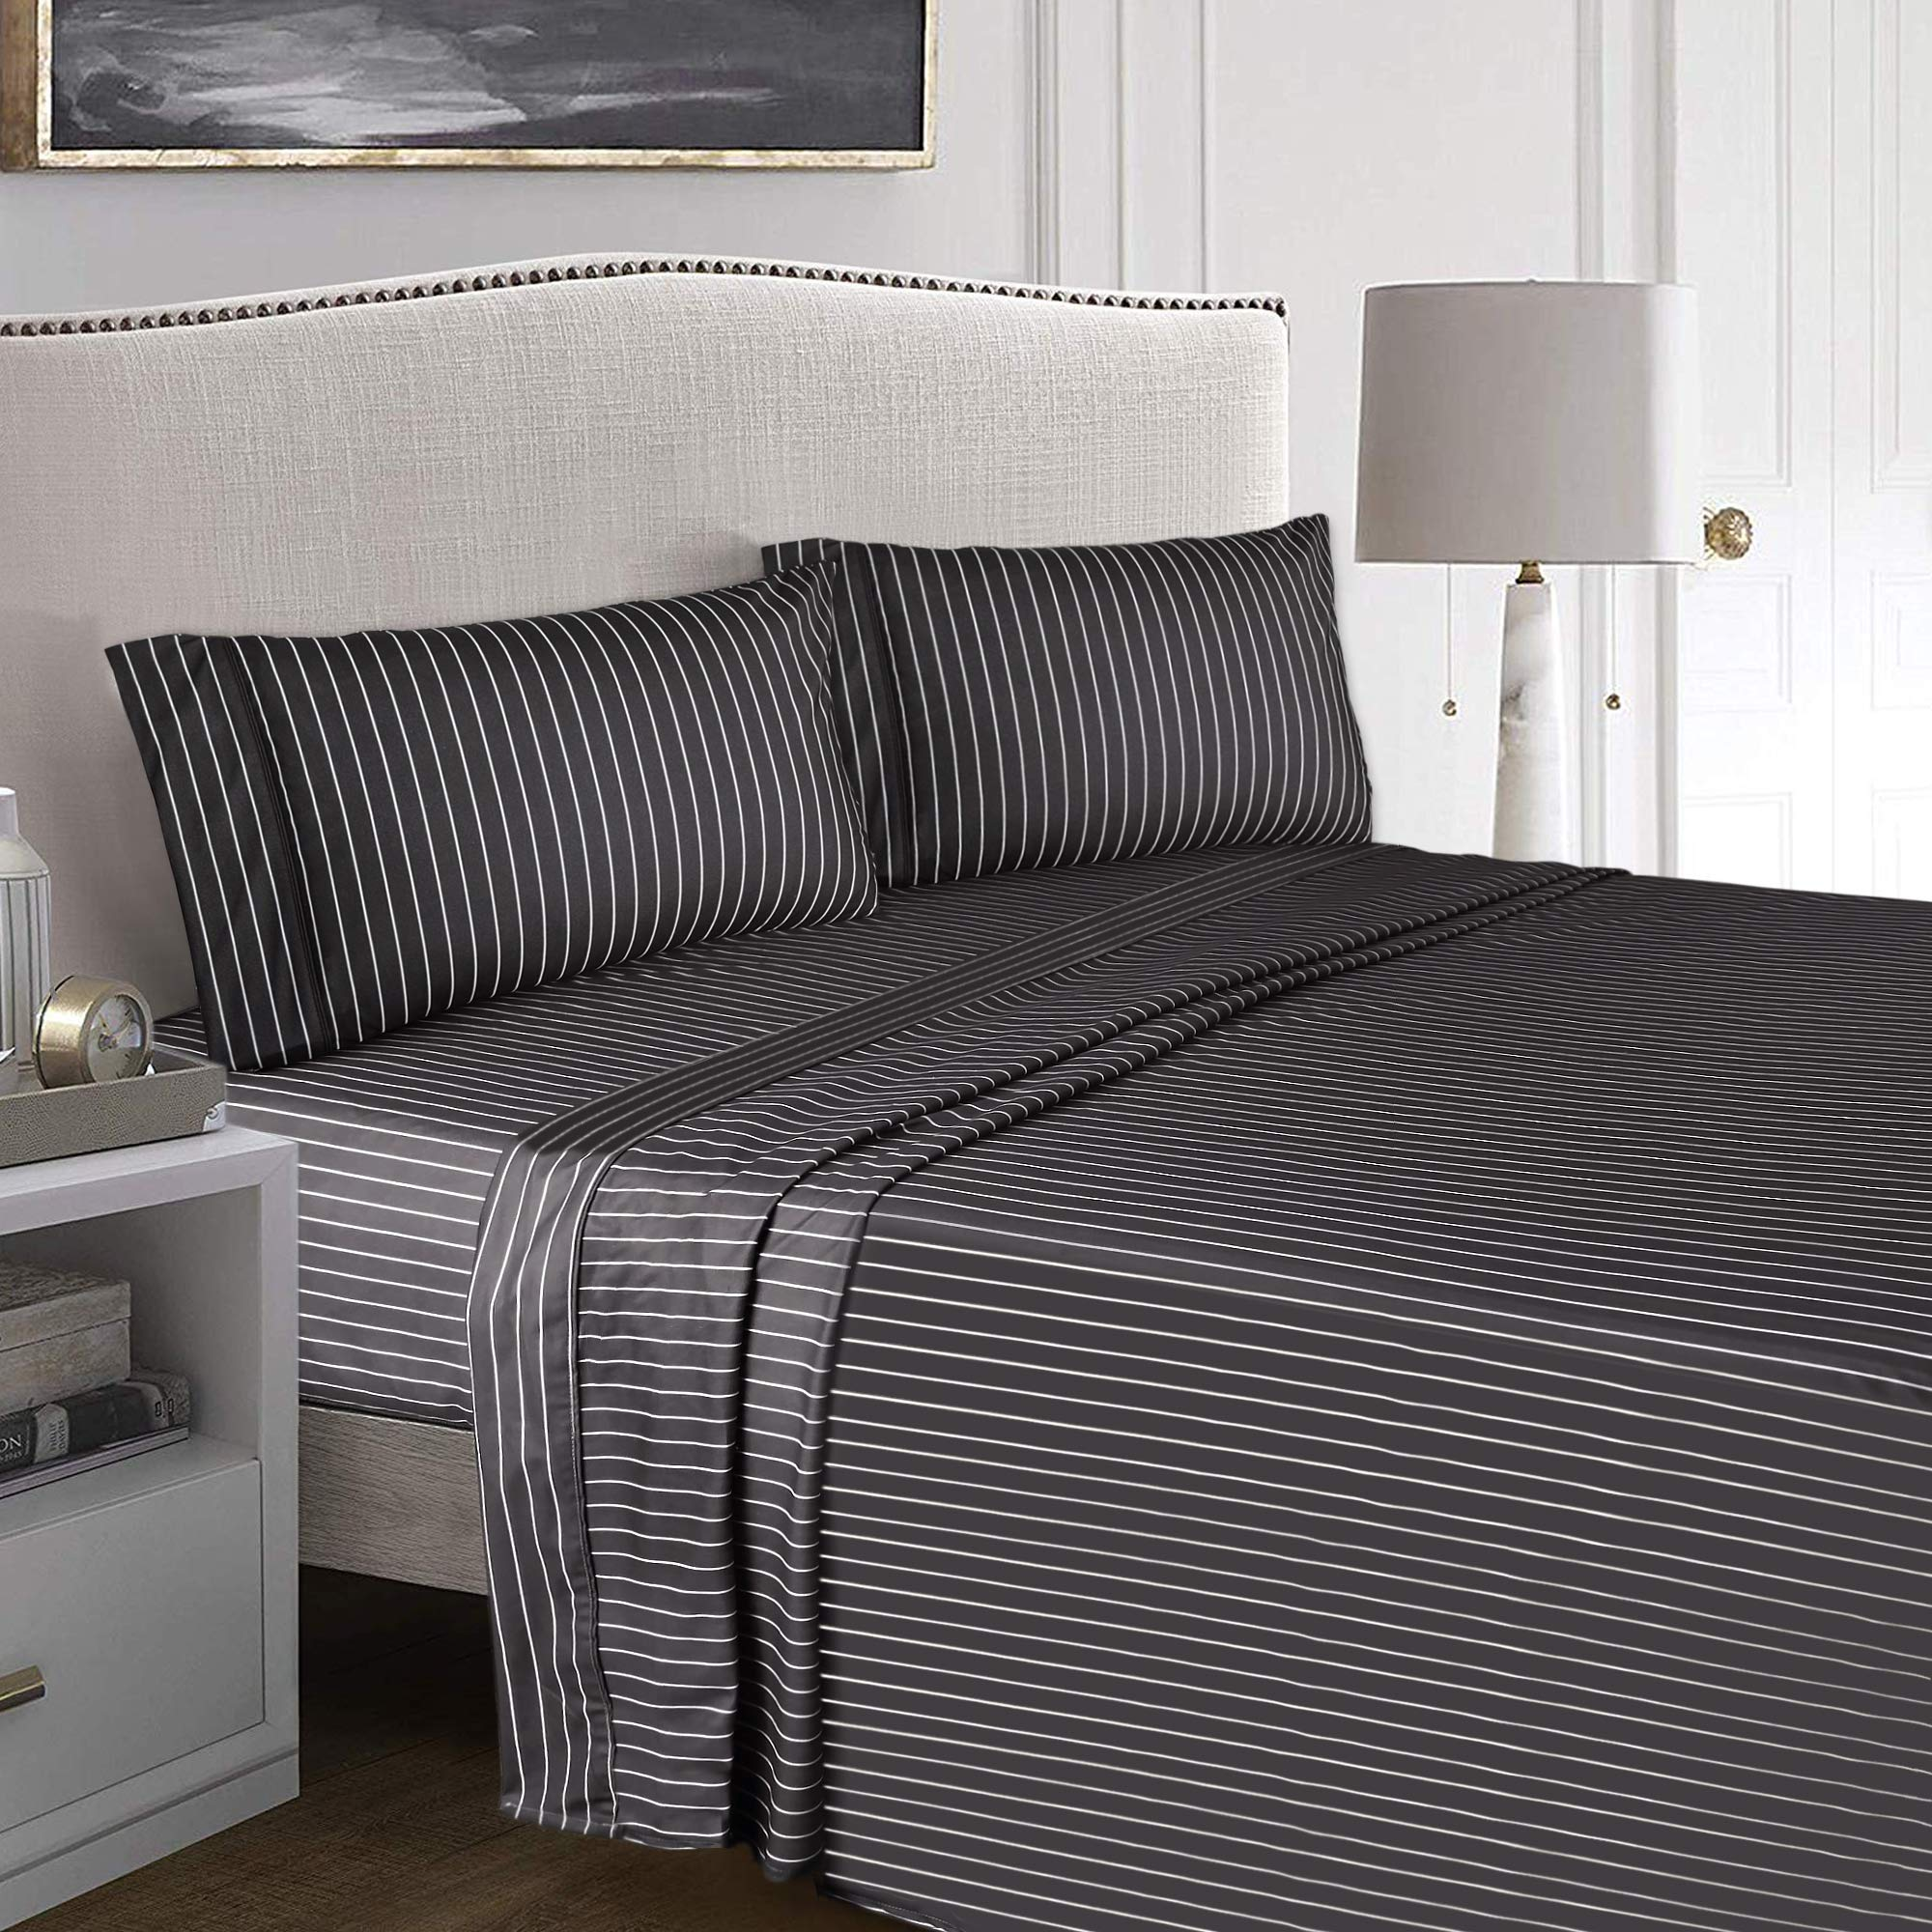 MARQUESS Flannel Sheet Set,Warm Sheets, Ultra Soft Comfortable 3 Pieces Bedding Breathable & Luxury(Twin XL, Charcoal Gypsophila)